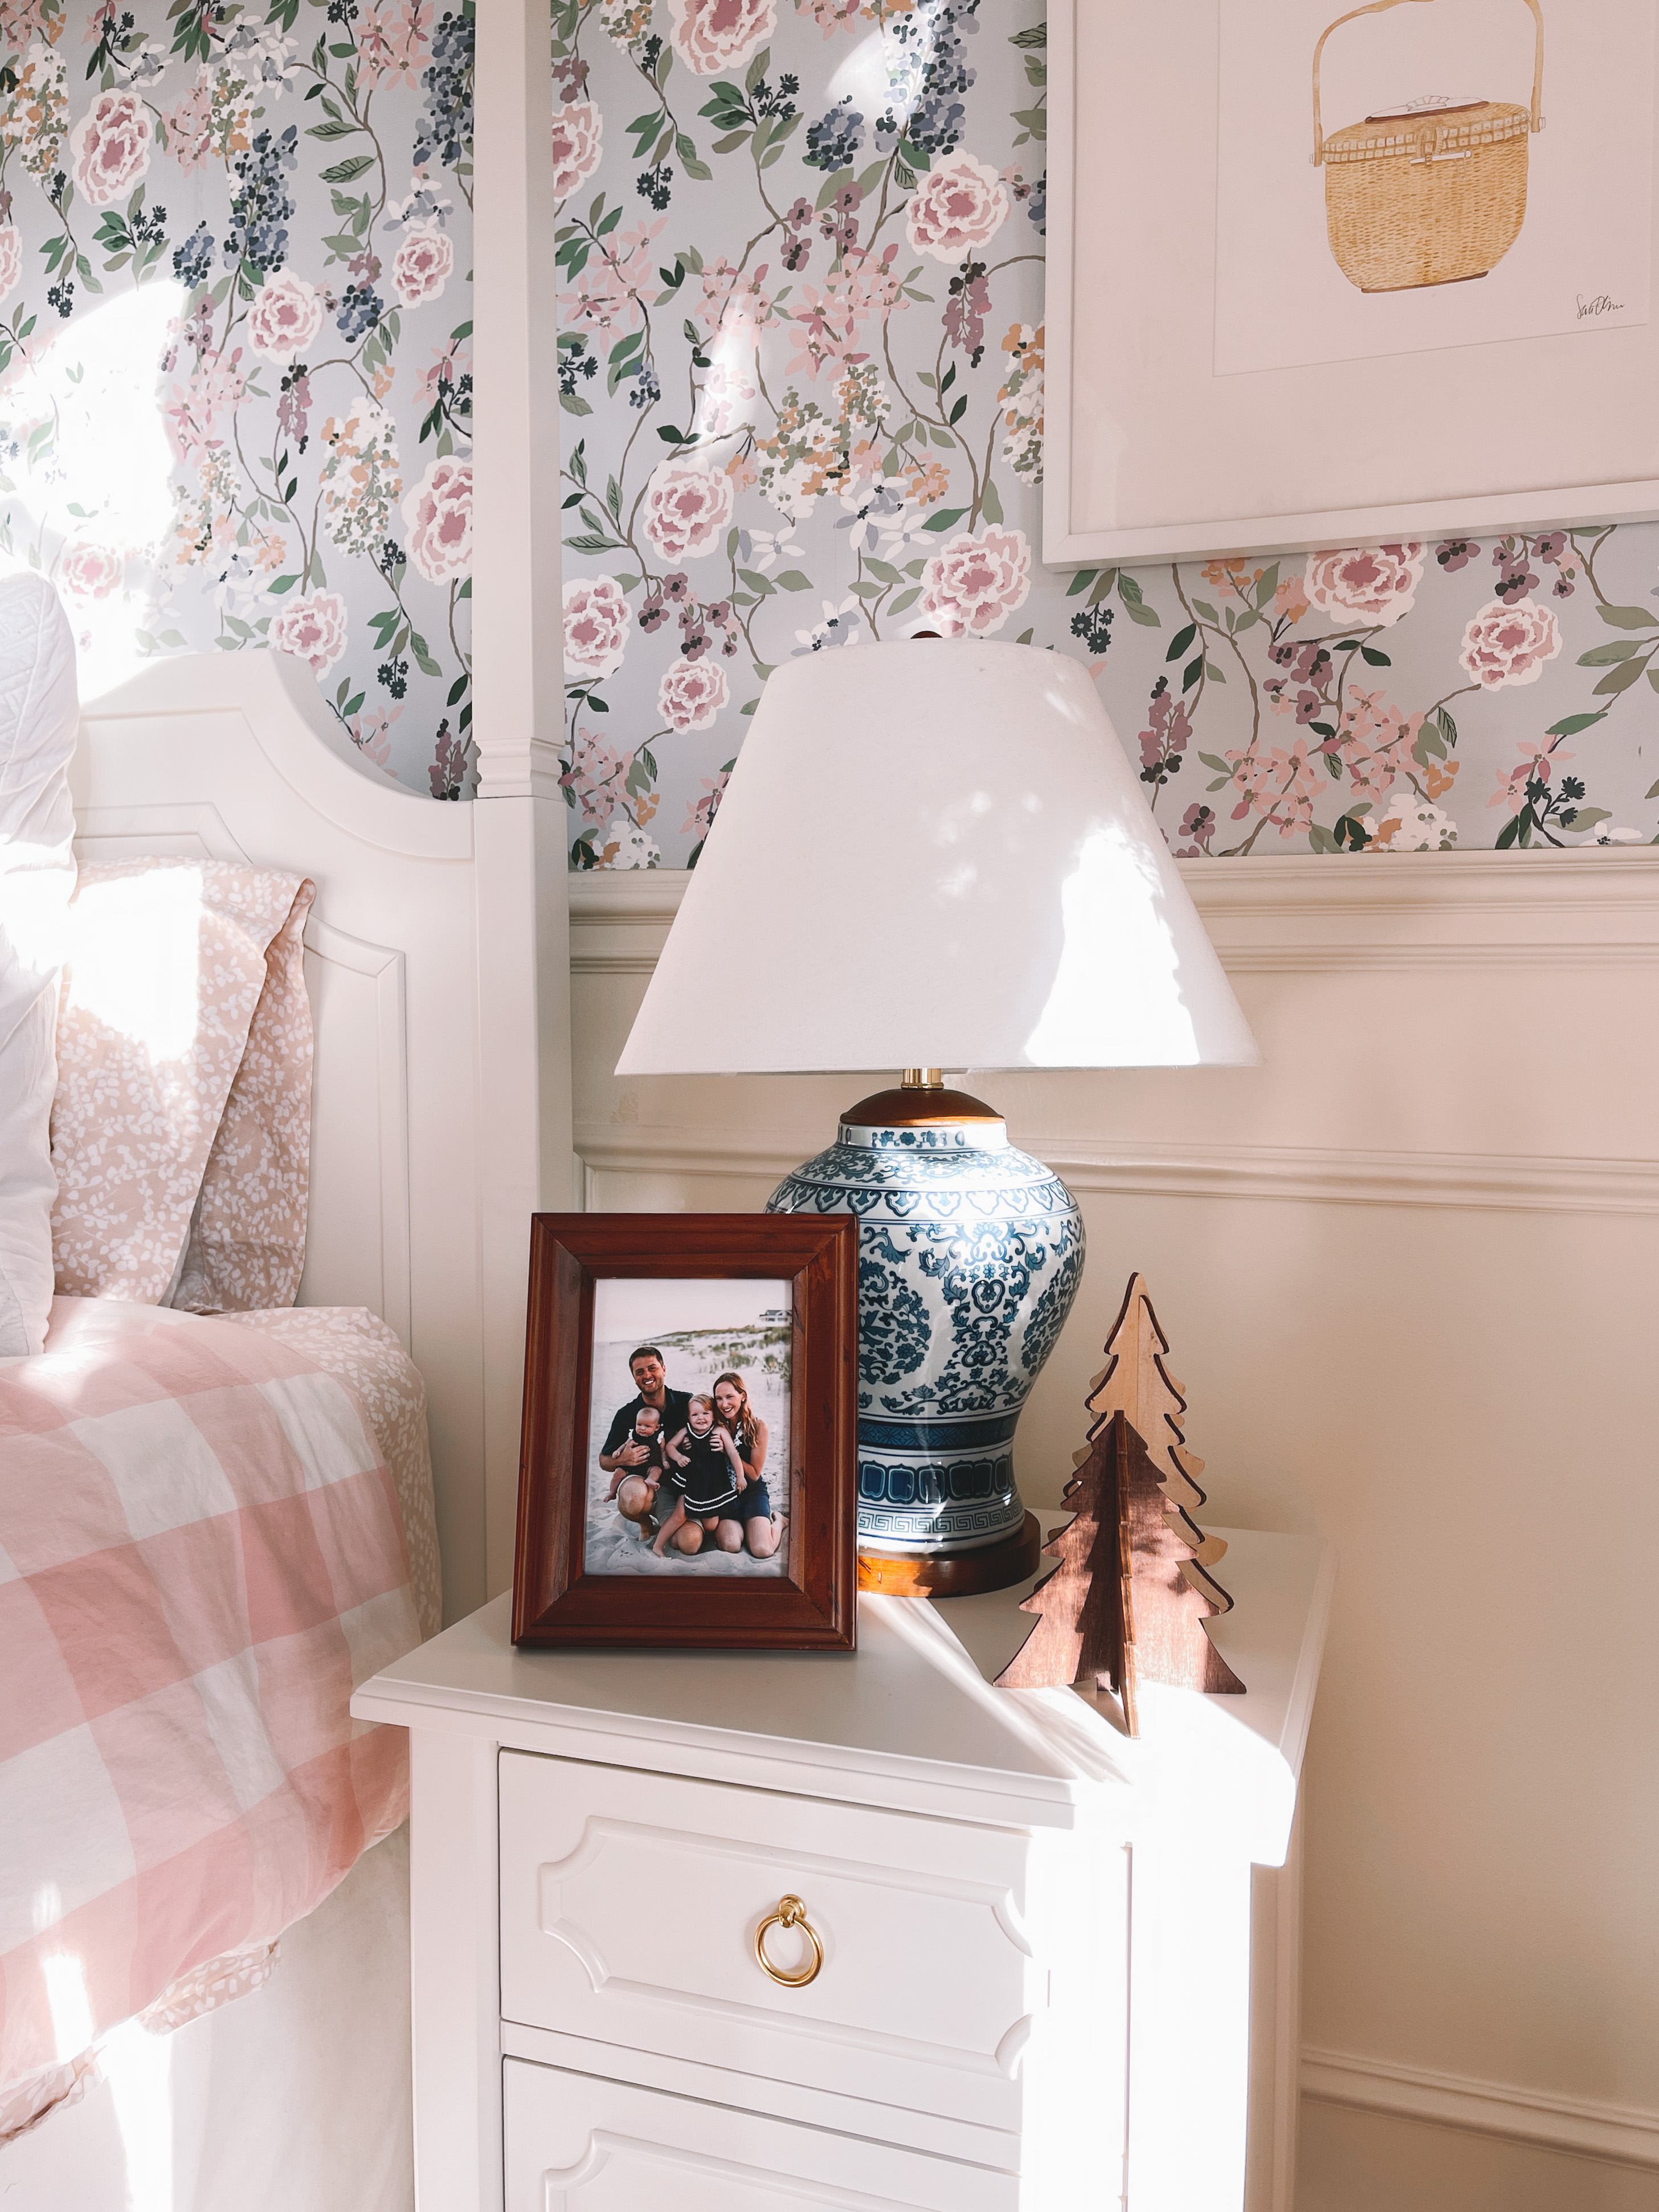 Holiday Decor: Emma's Room